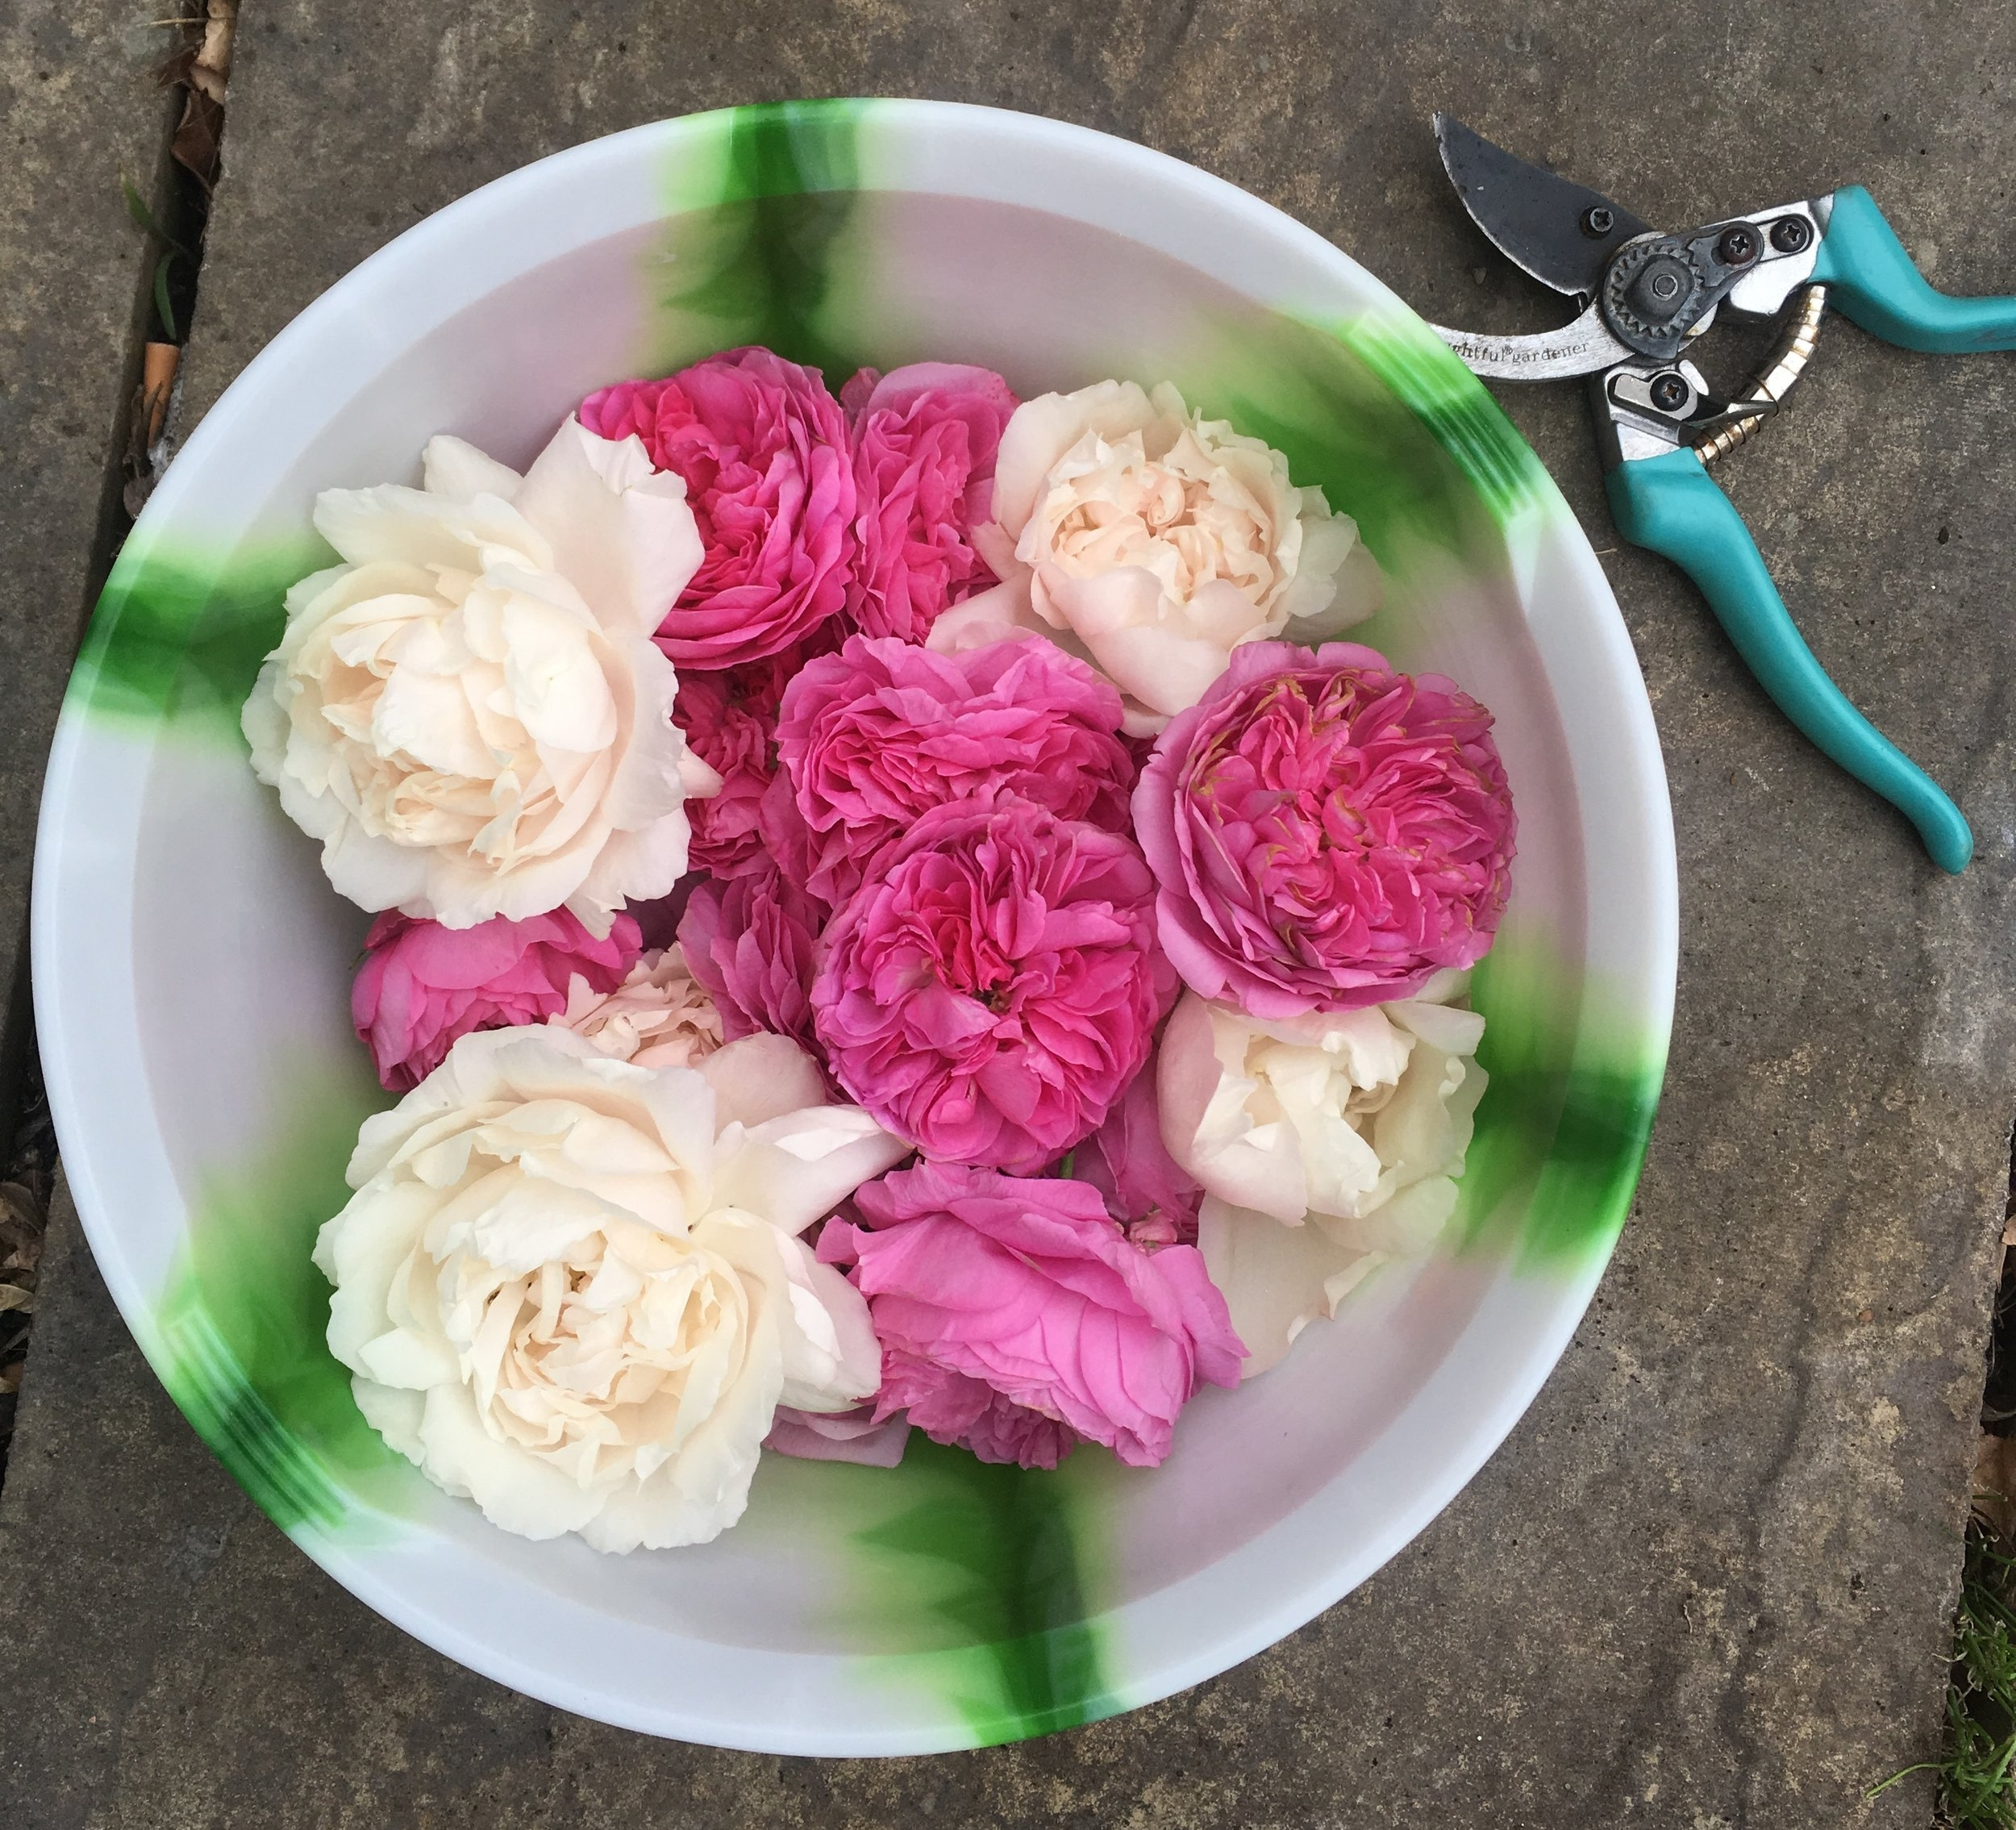 Floral roses - use a clean container to collect your flowers as you harvest them